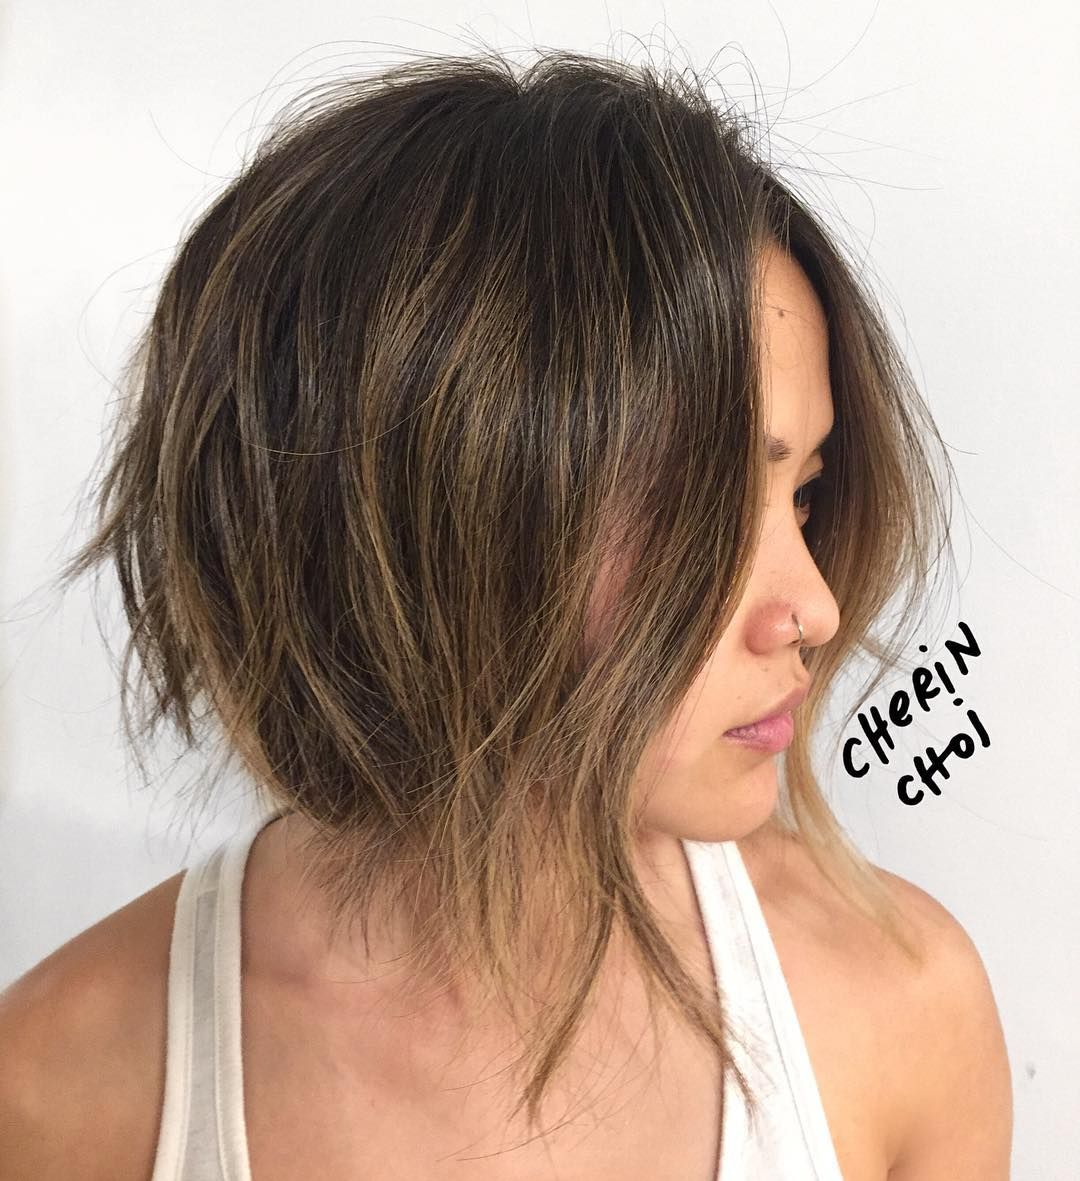 Lighter And Brighter Blondish Highlights For A Natural Level 2 Hair